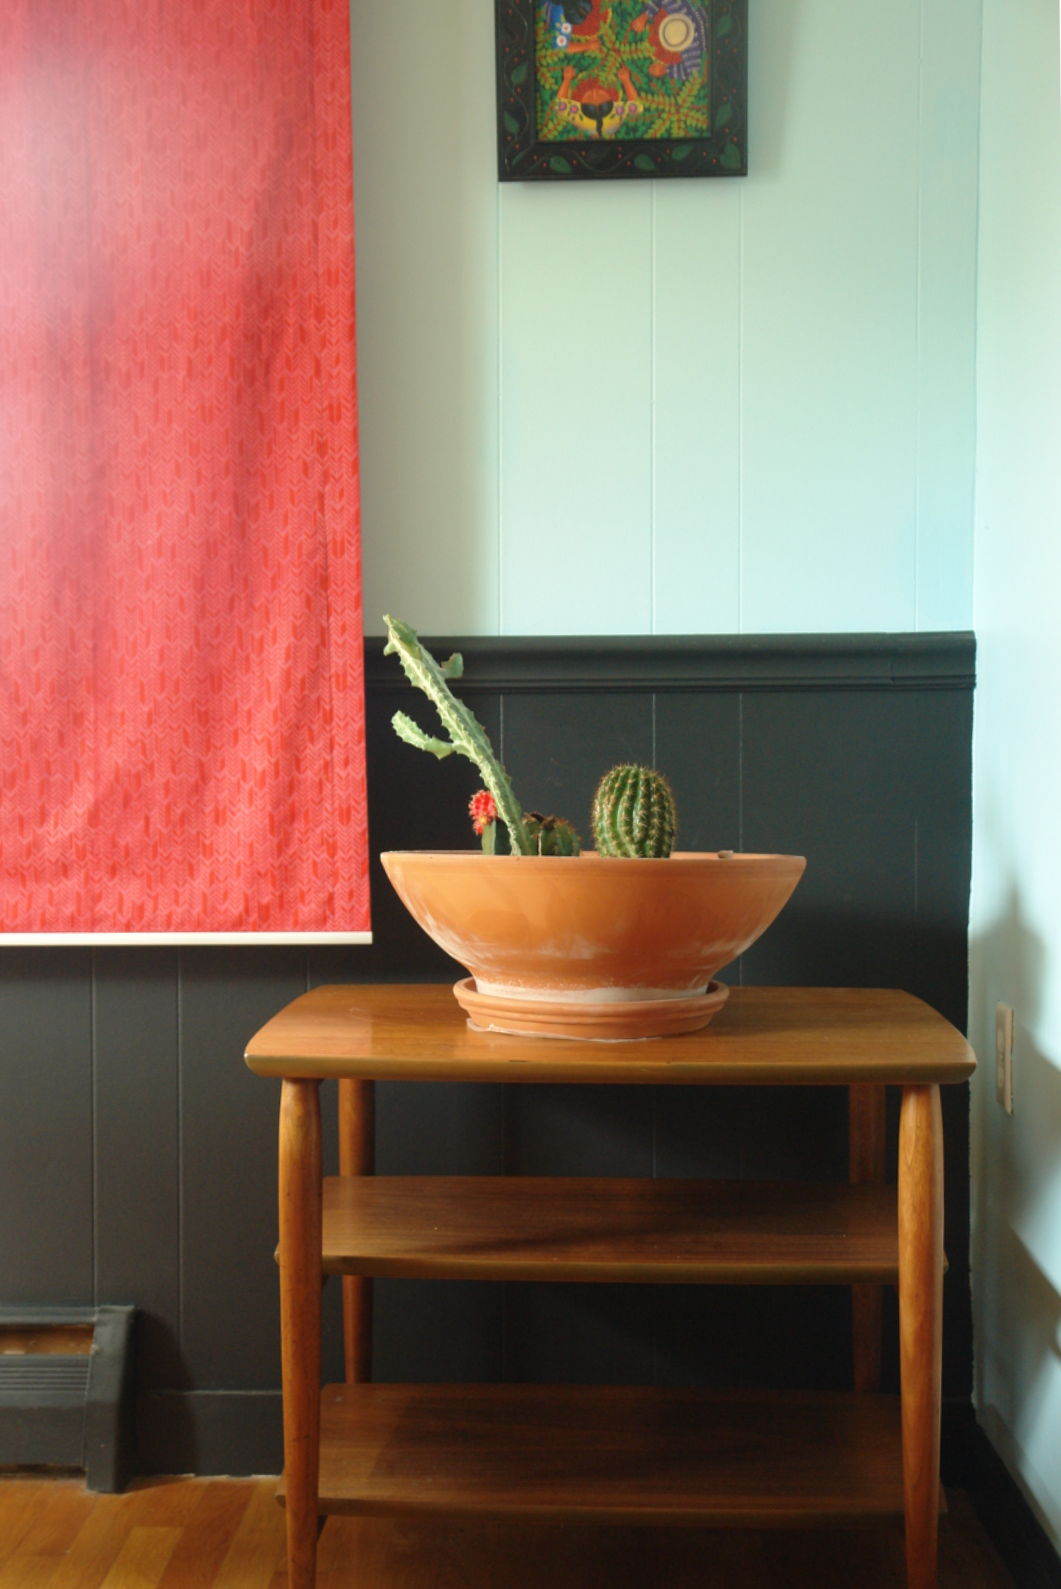 Paint colors that match this Apartment Therapy photo: SW 6621 ...